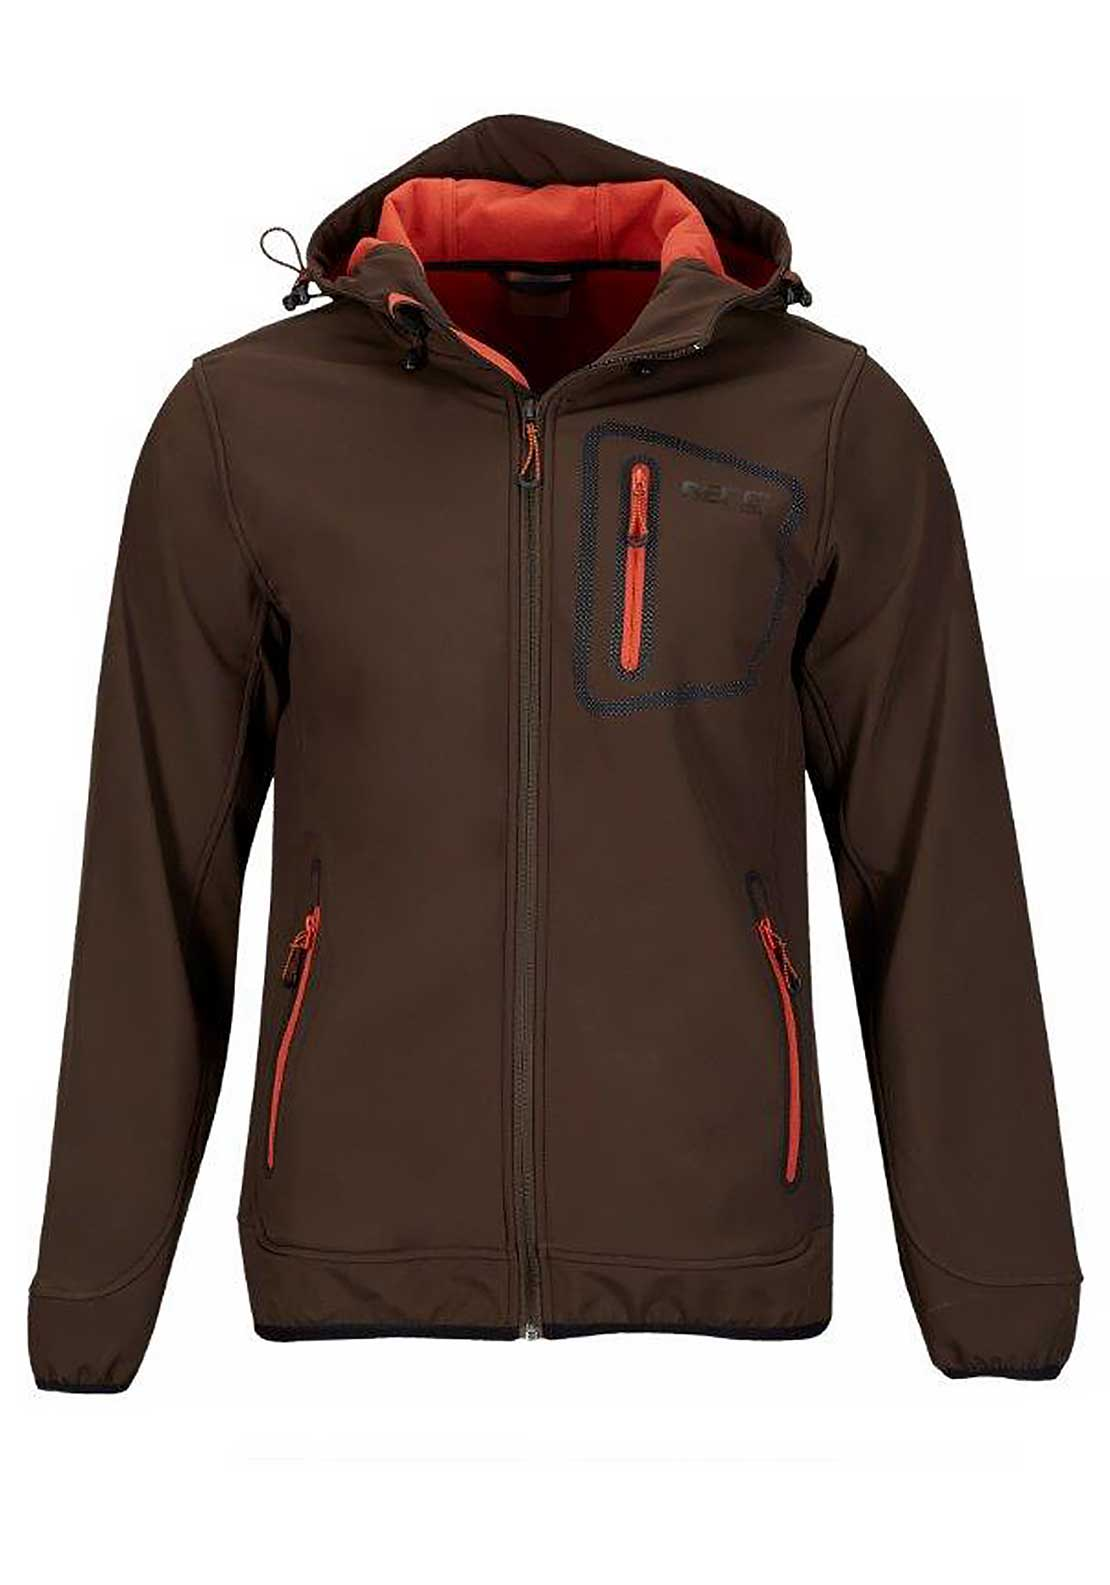 Berg Outdoor Mens Yukdi Hooded Jacket, Brown